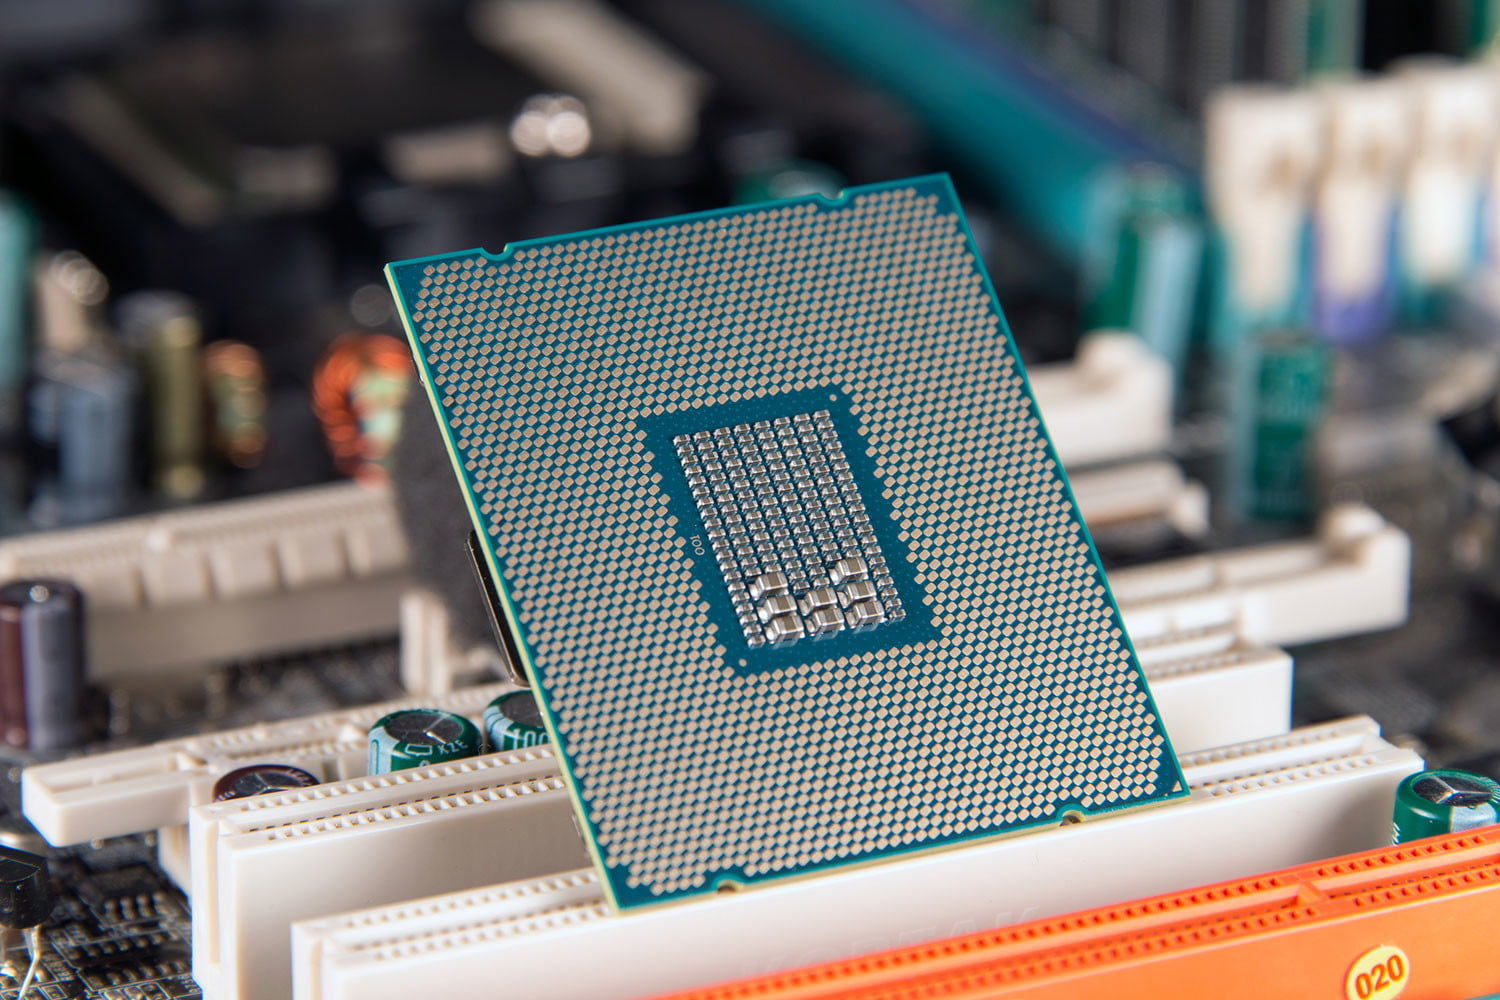 If Intel skips 10nm desktop CPUs to get to 7nm, they could be delayed until 2022